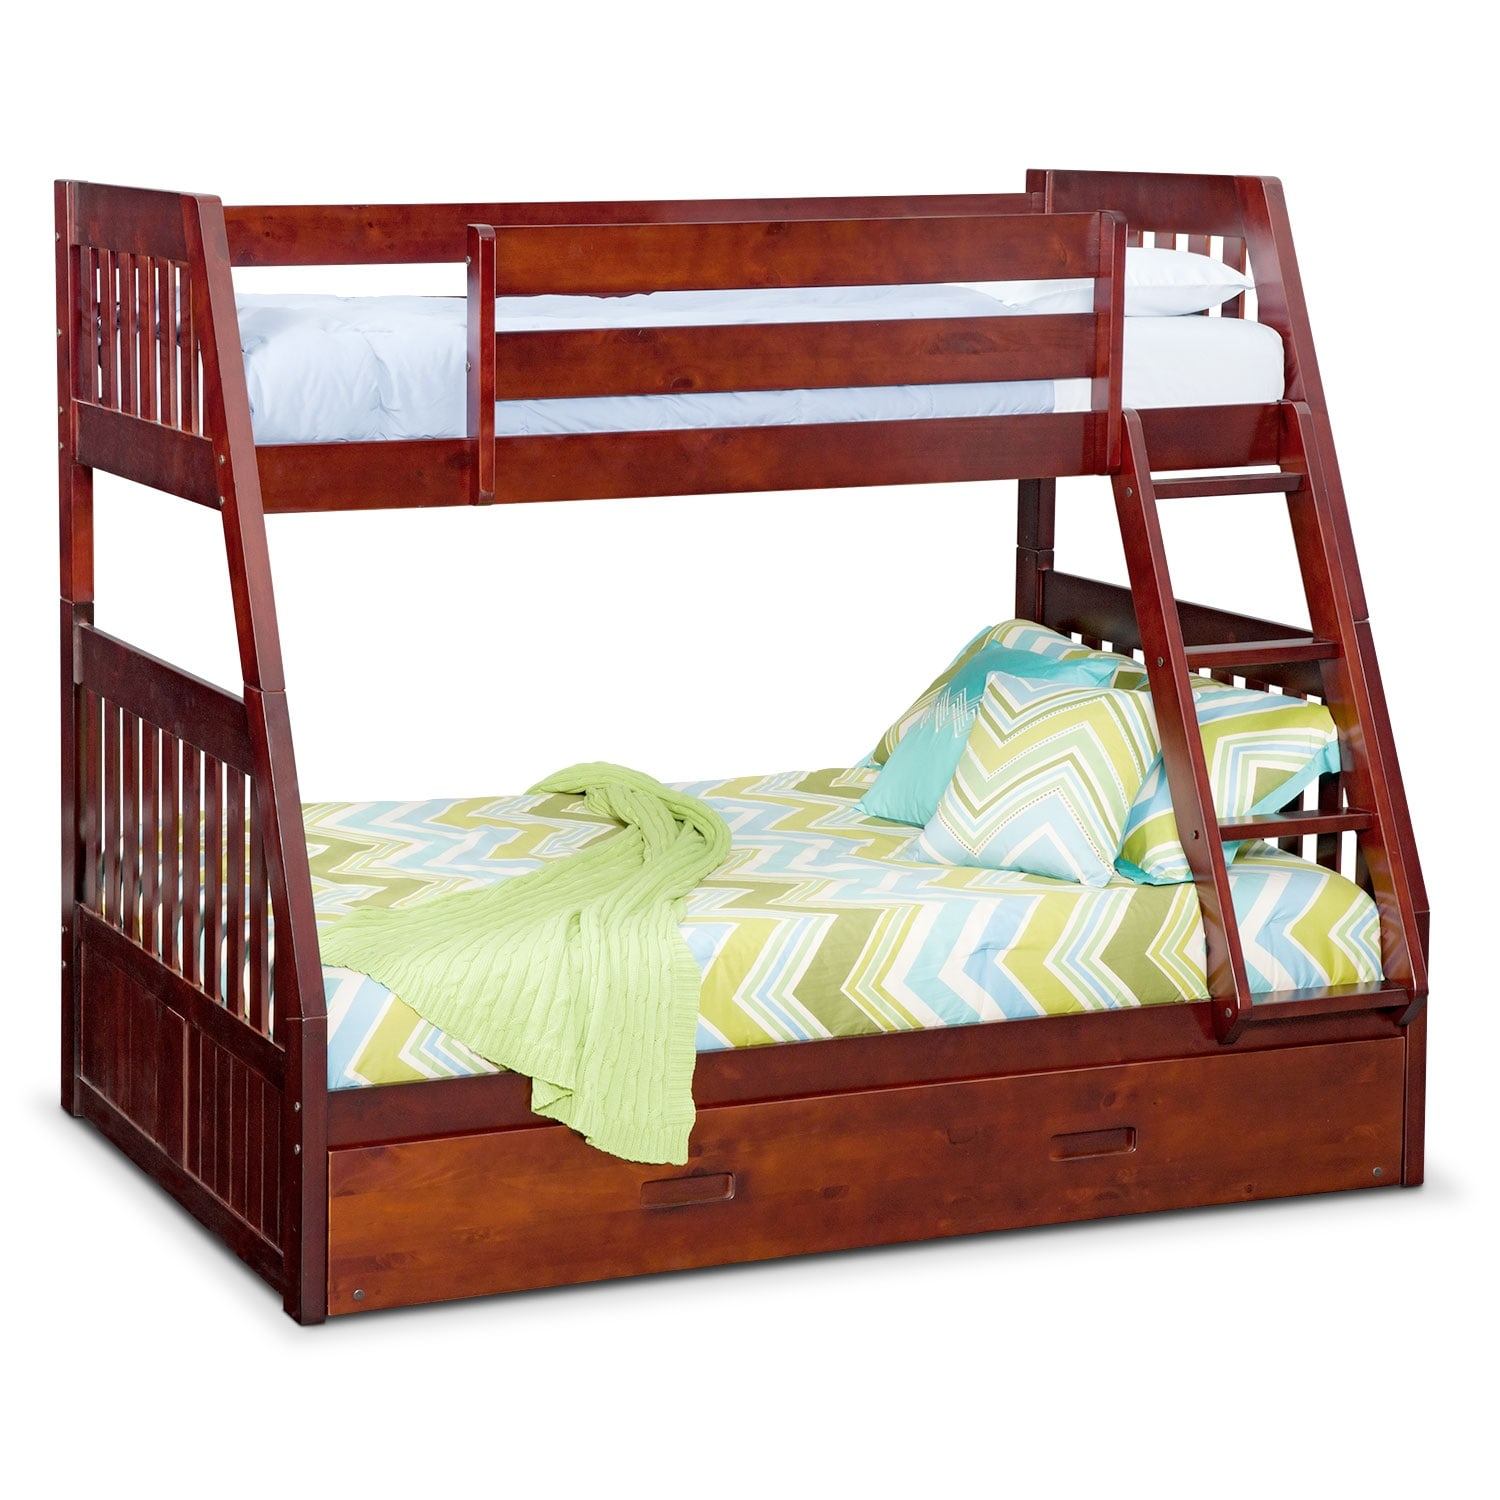 Kids Furniture - Ranger Merlot Twin/Full Bunk Bed with Trundle